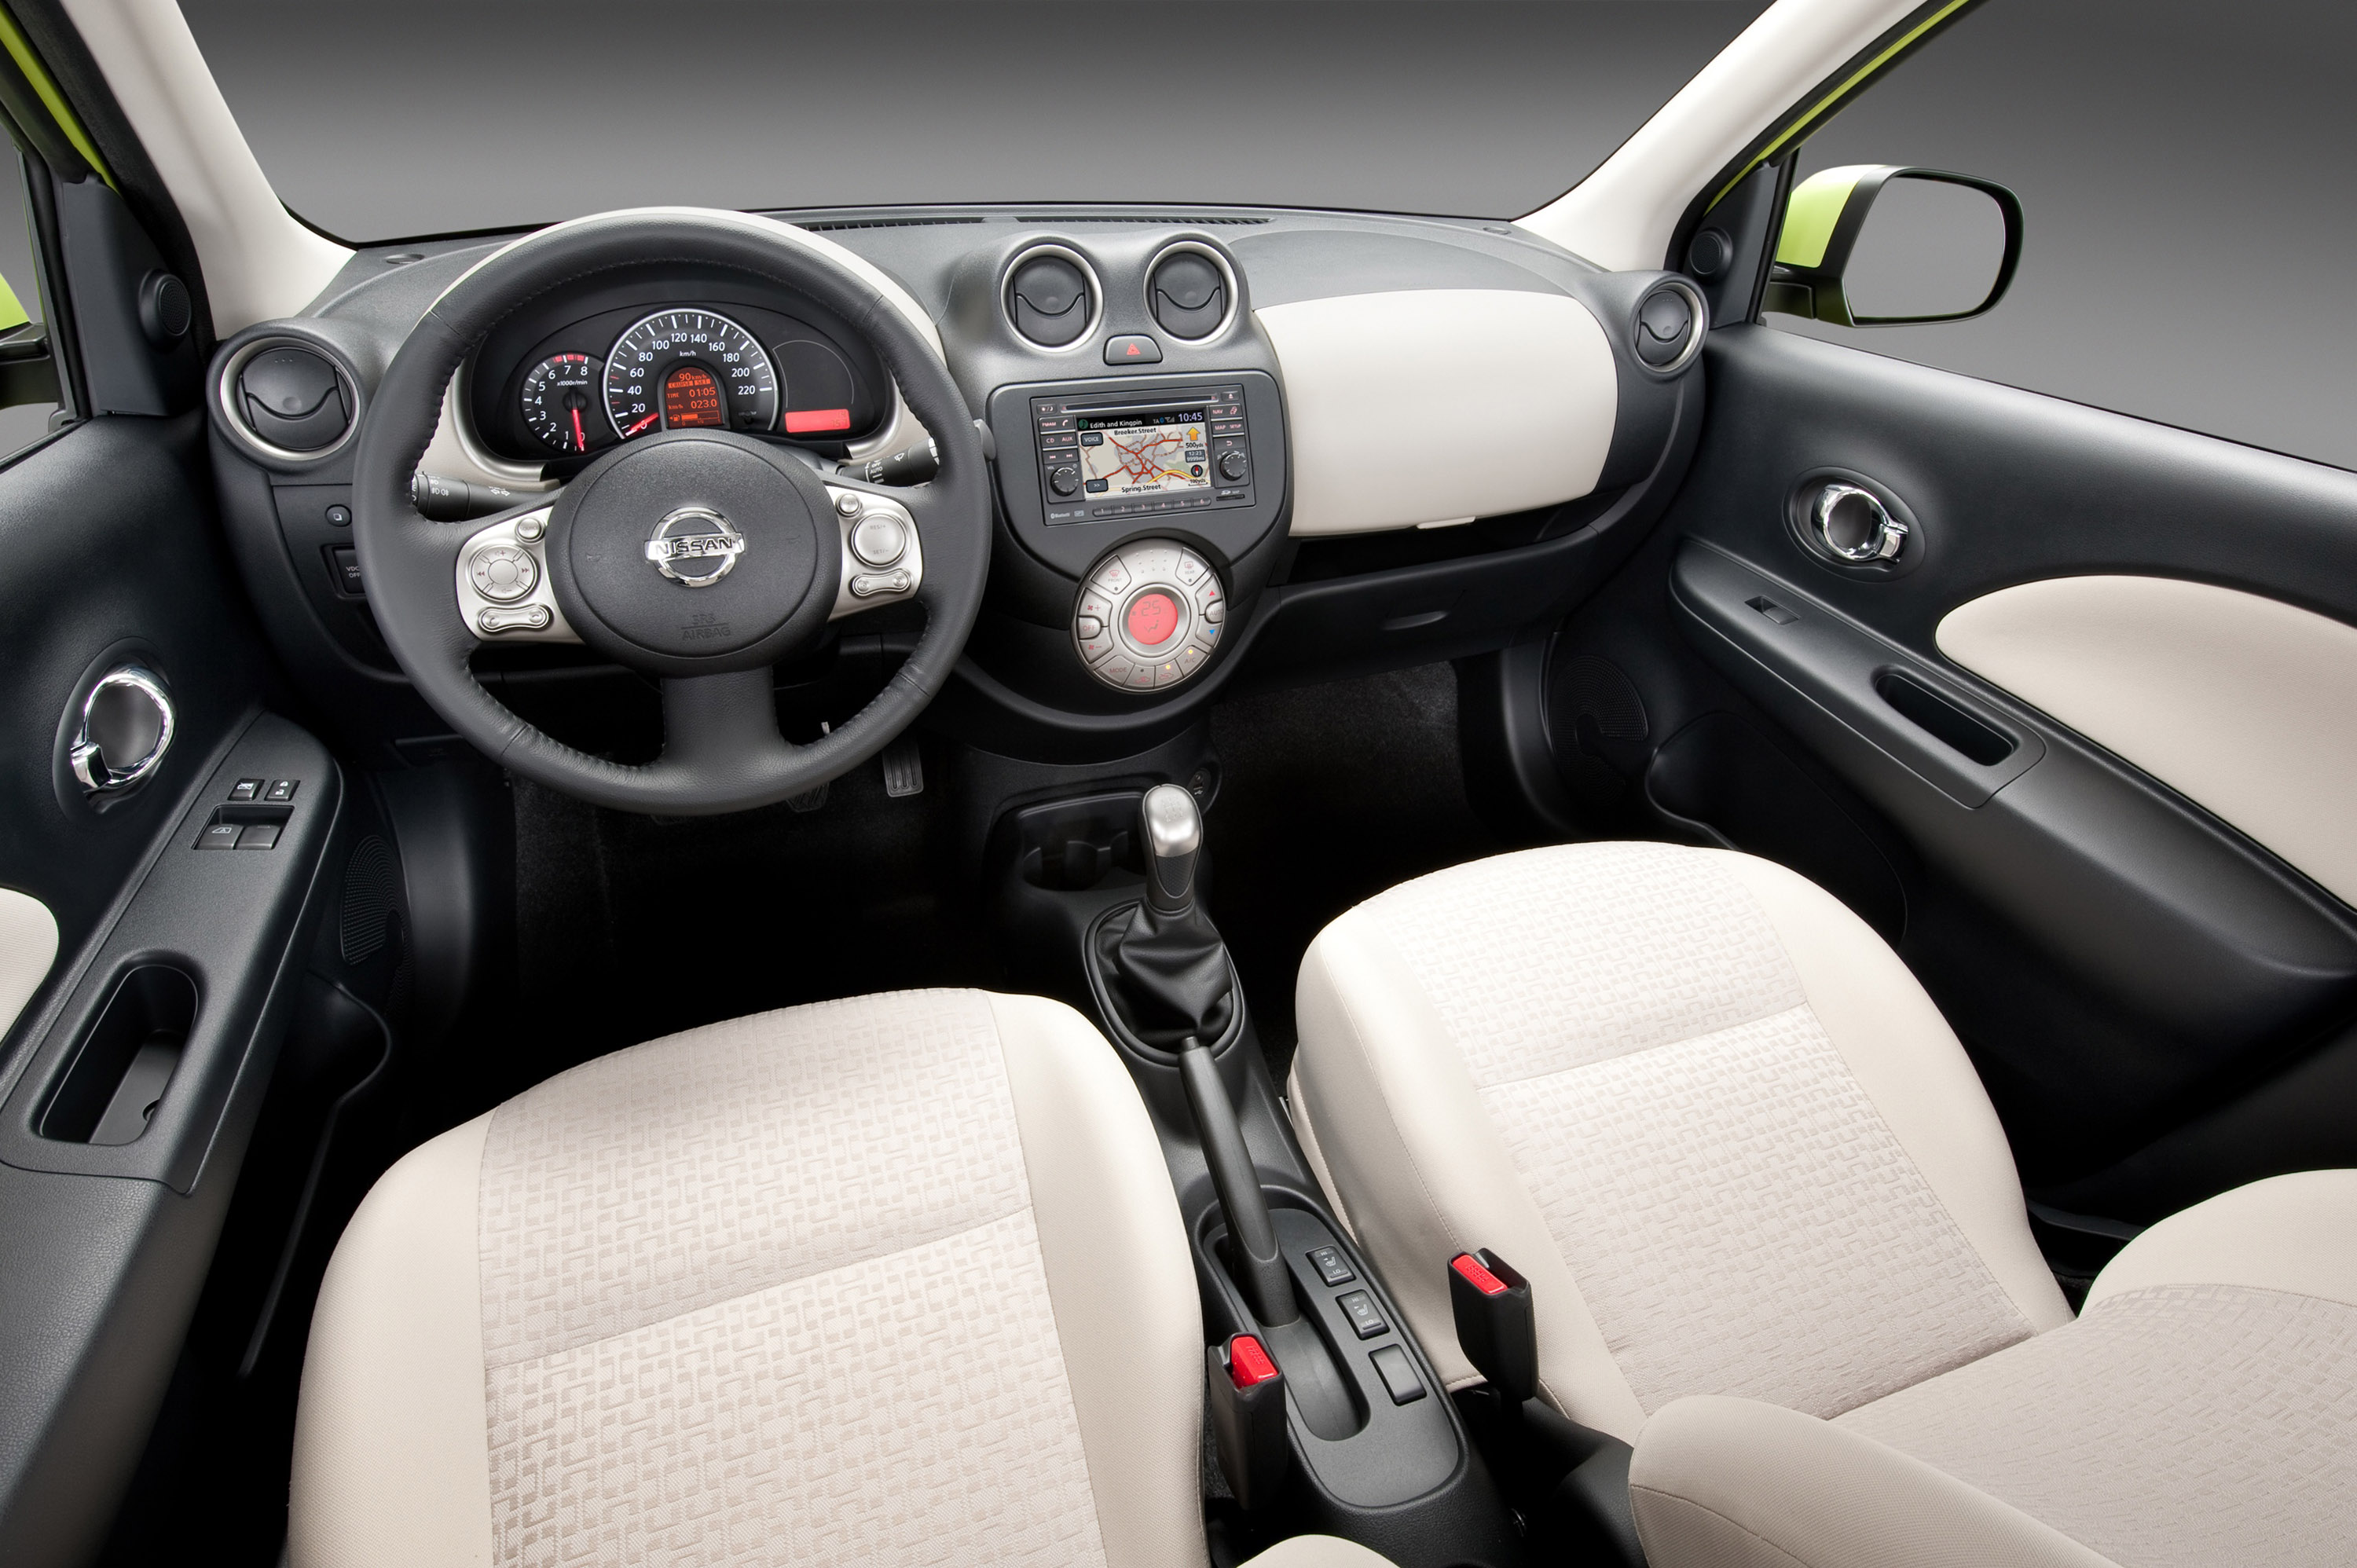 Nissan Micra Review >> 2011 Nissan Micra at the assembly line